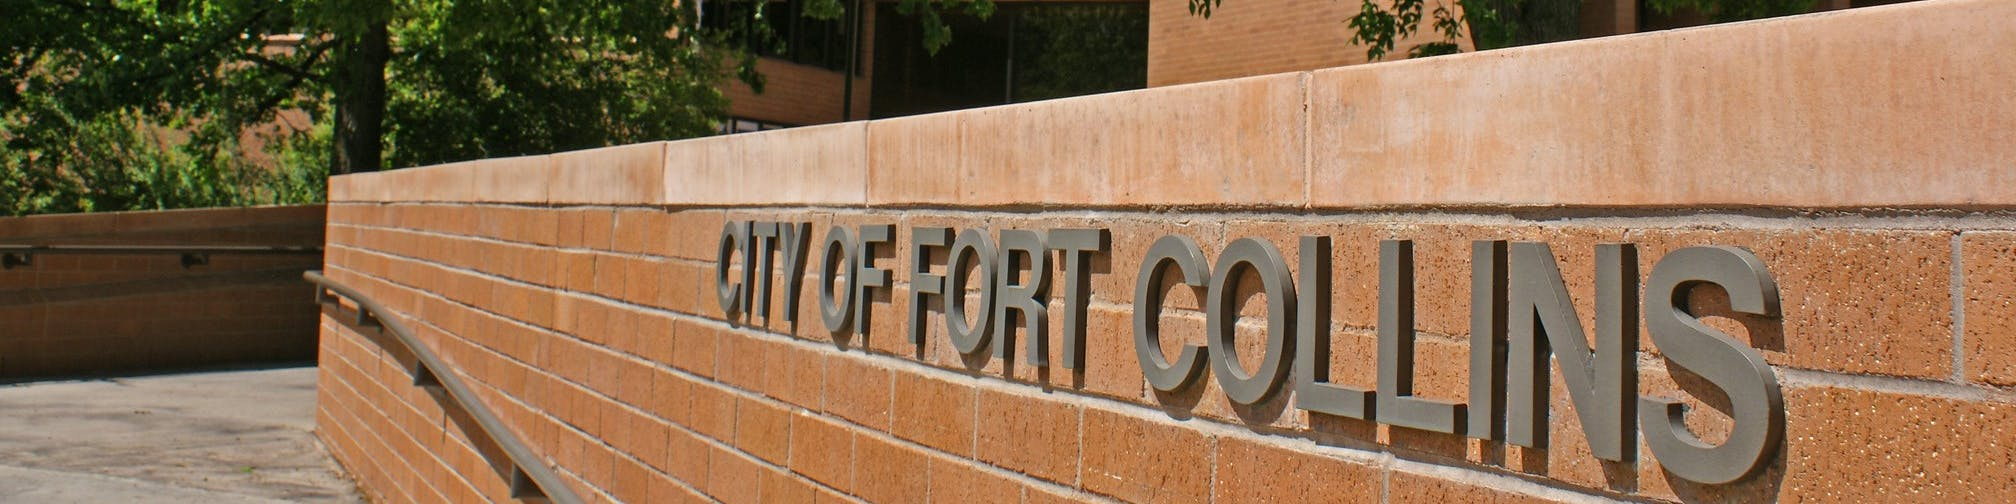 City of Fort Collins - City Hall